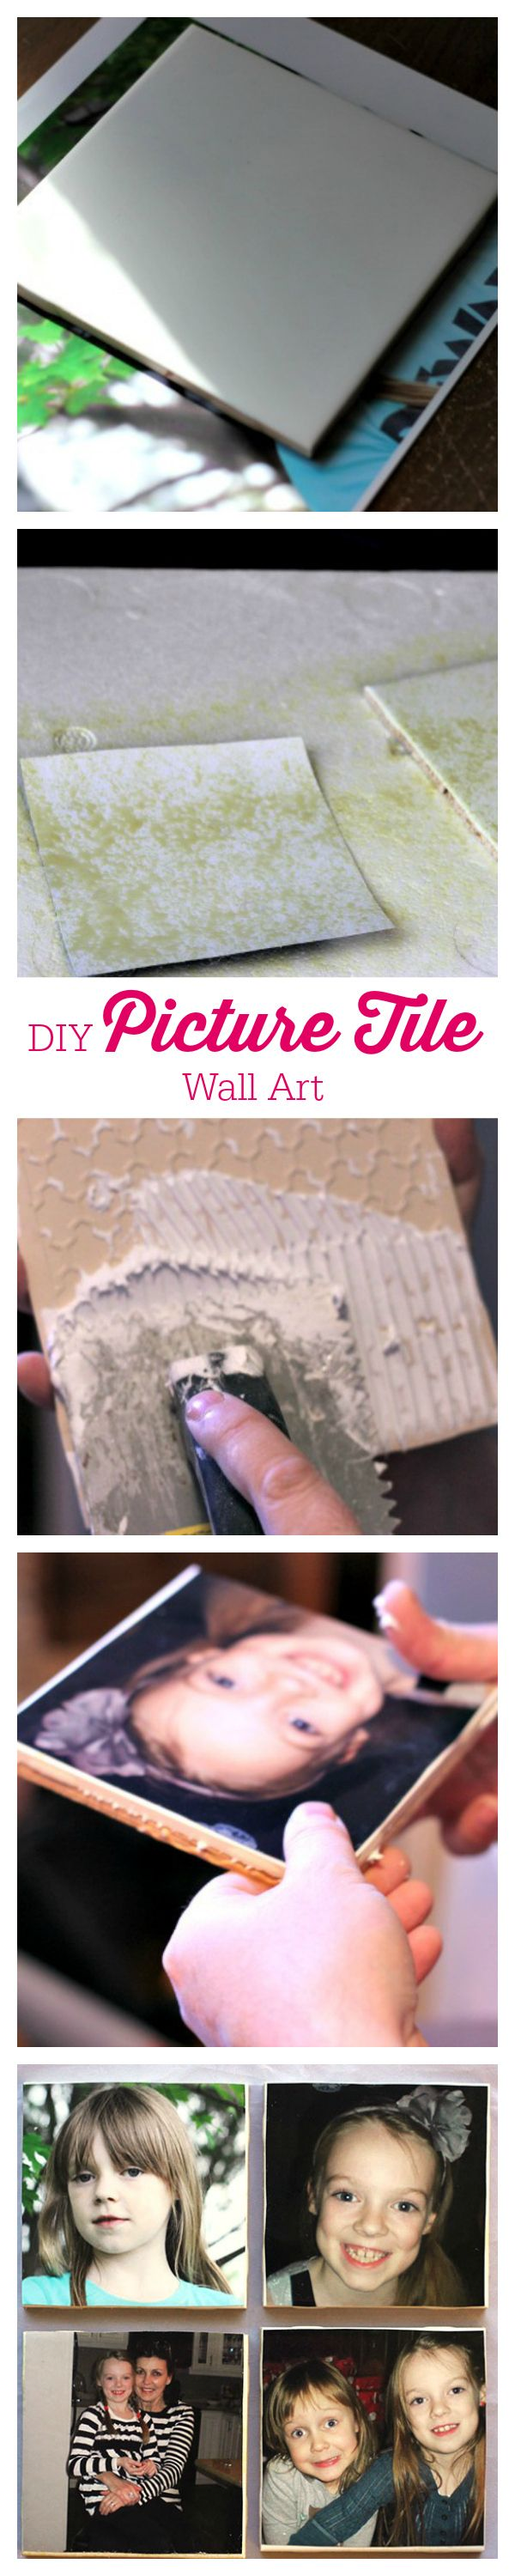 DIY Picture Tile Wall Art - add your fave photos to some tiles to create beautiful and meaningful wall decor.